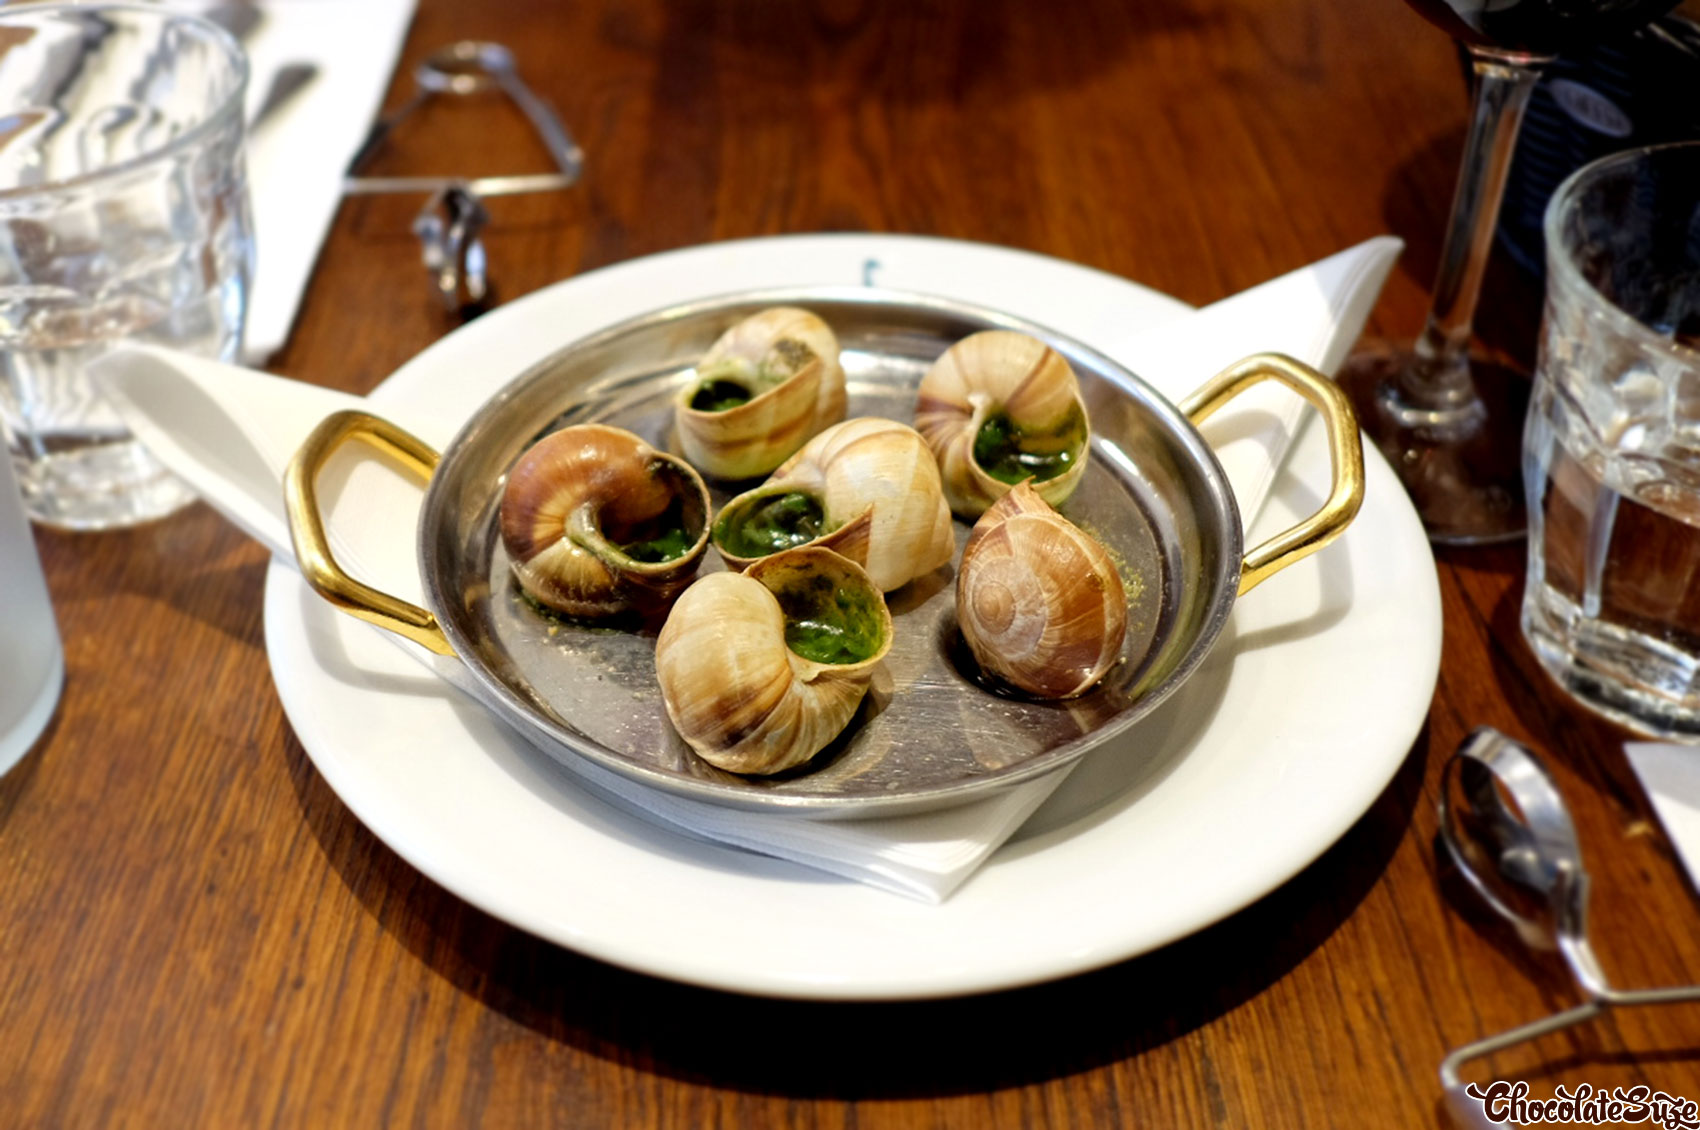 Bourgogne snails at Le Comptoir de la Gastronomie, Paris